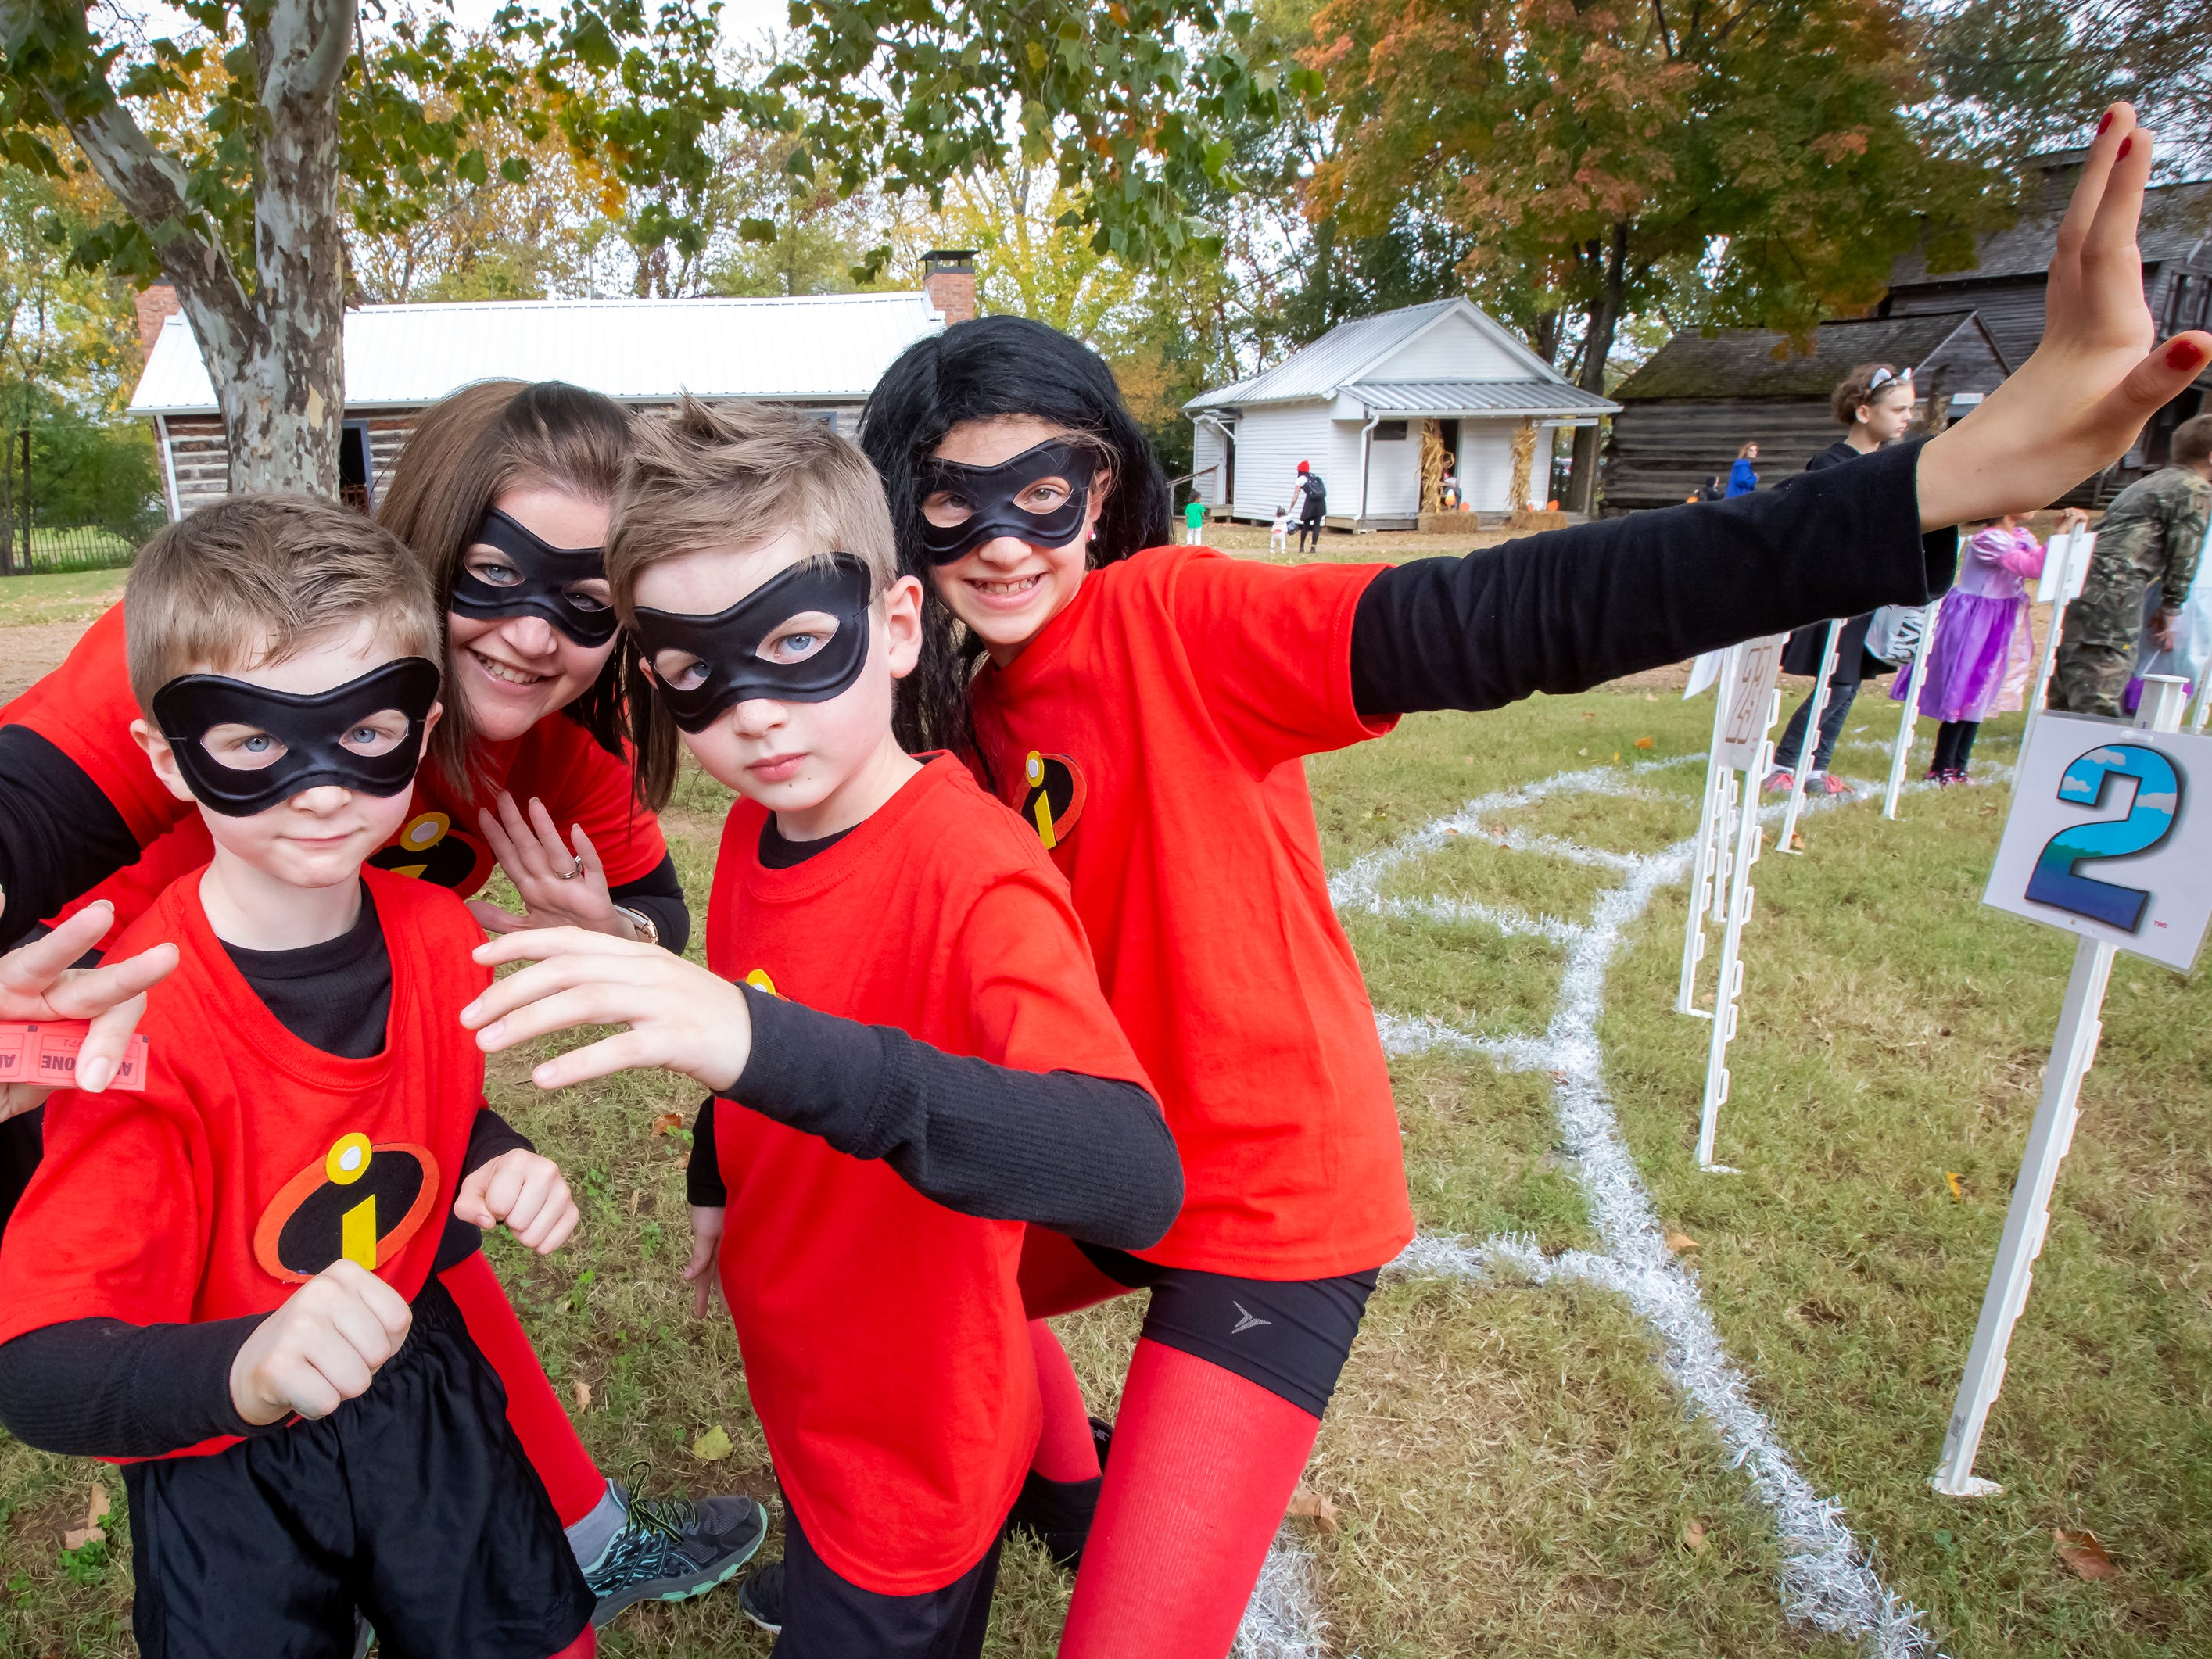 The Incredibles, aka as Michelle, Sydney, Bradyn and Clay Nelson, were at the Fall Celebration and Hayride at Cannonsburgh Village.